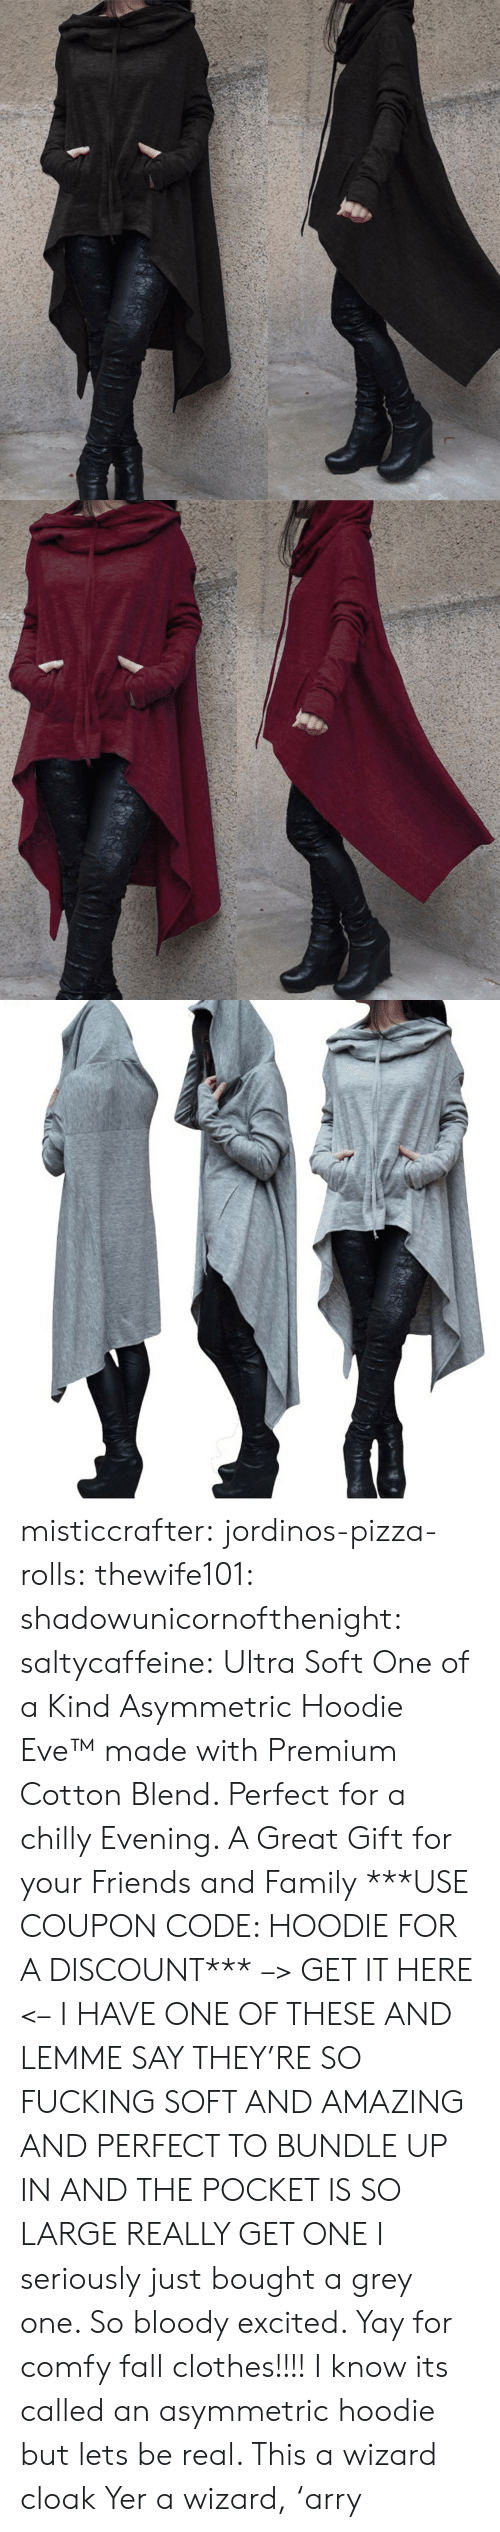 yer: misticcrafter: jordinos-pizza-rolls:  thewife101:  shadowunicornofthenight:  saltycaffeine:  Ultra Soft One of a Kind Asymmetric Hoodie Eve™made with Premium Cotton Blend. Perfect for a chilly Evening. A Great Gift for your Friends and Family ***USE COUPON CODE: HOODIE FOR A DISCOUNT*** –> GET IT HERE <–   I HAVE ONE OF THESE AND LEMME SAY THEY'RE SO FUCKING SOFT AND AMAZING AND PERFECT TO BUNDLE UP IN AND THE POCKET IS SO LARGE REALLY GET ONE   I seriously just bought a grey one. So bloody excited. Yay for comfy fall clothes!!!!    I know its called an asymmetric hoodie but lets be real. This a wizard cloak  Yer a wizard,'arry